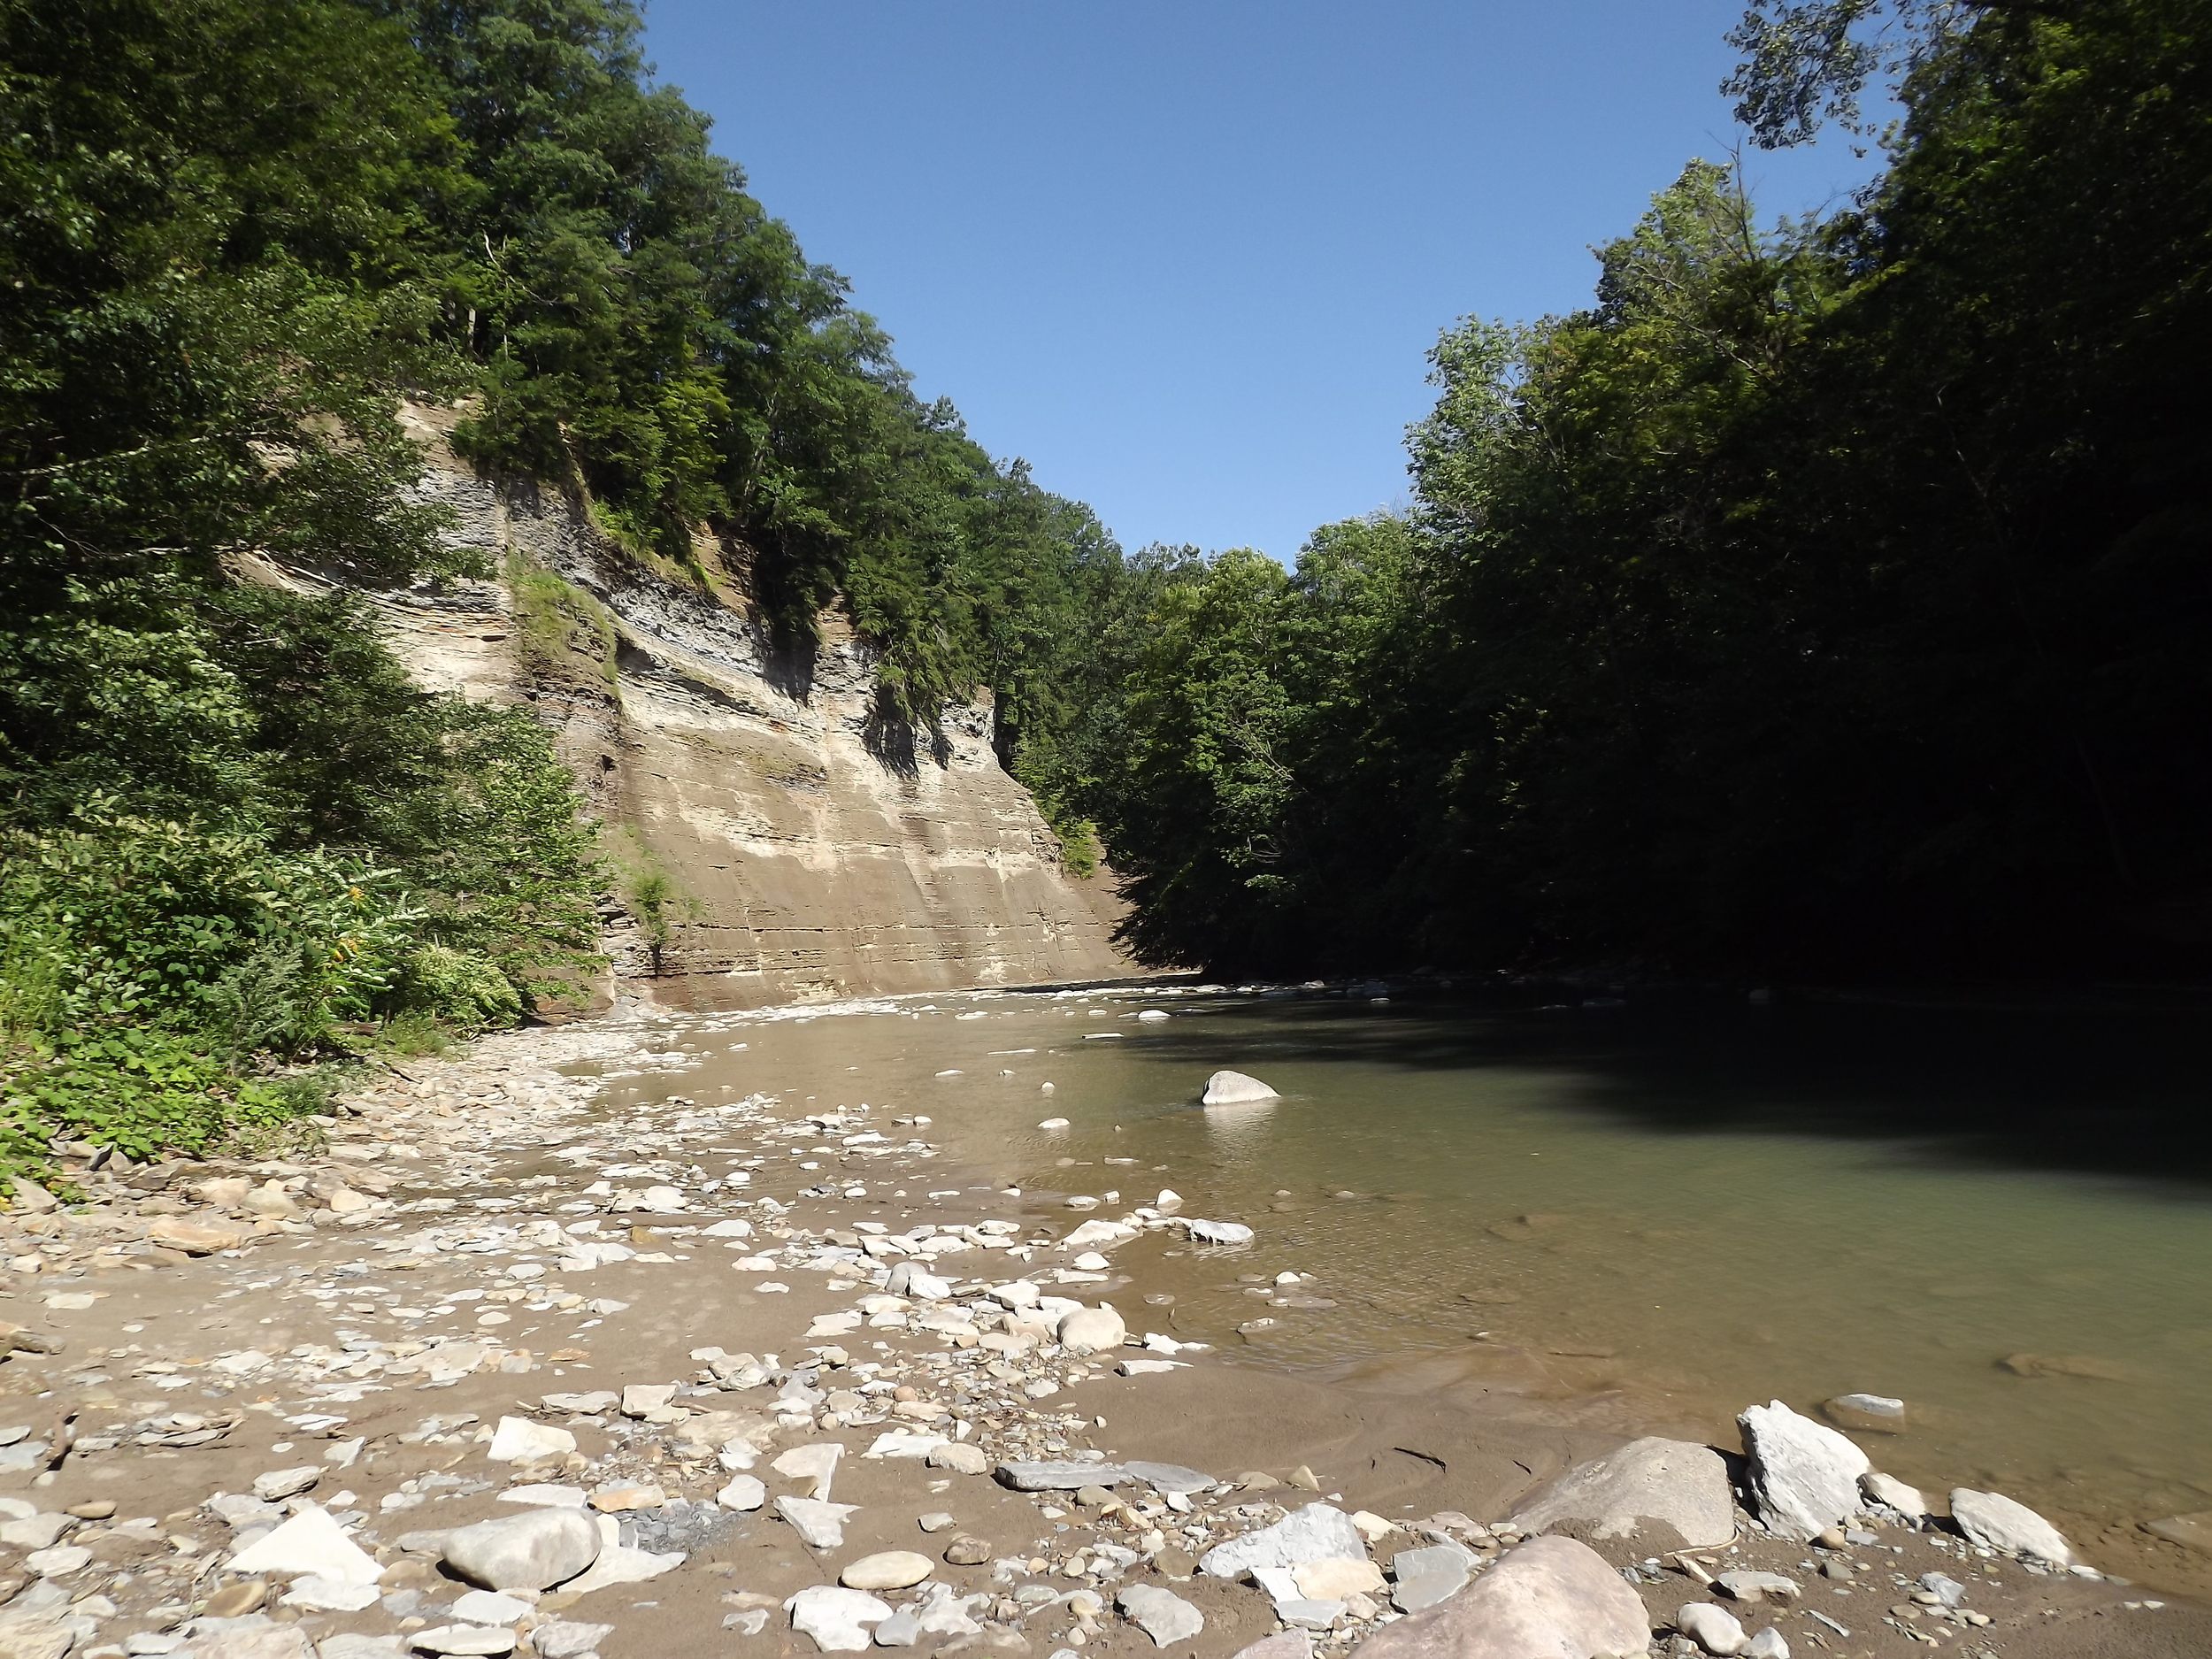 Southbranch Cliff -  When you first reach the streambed of the South Branch of the Cattaraugus, you are greeted by an imposing cliff that is a good sign of things to come.